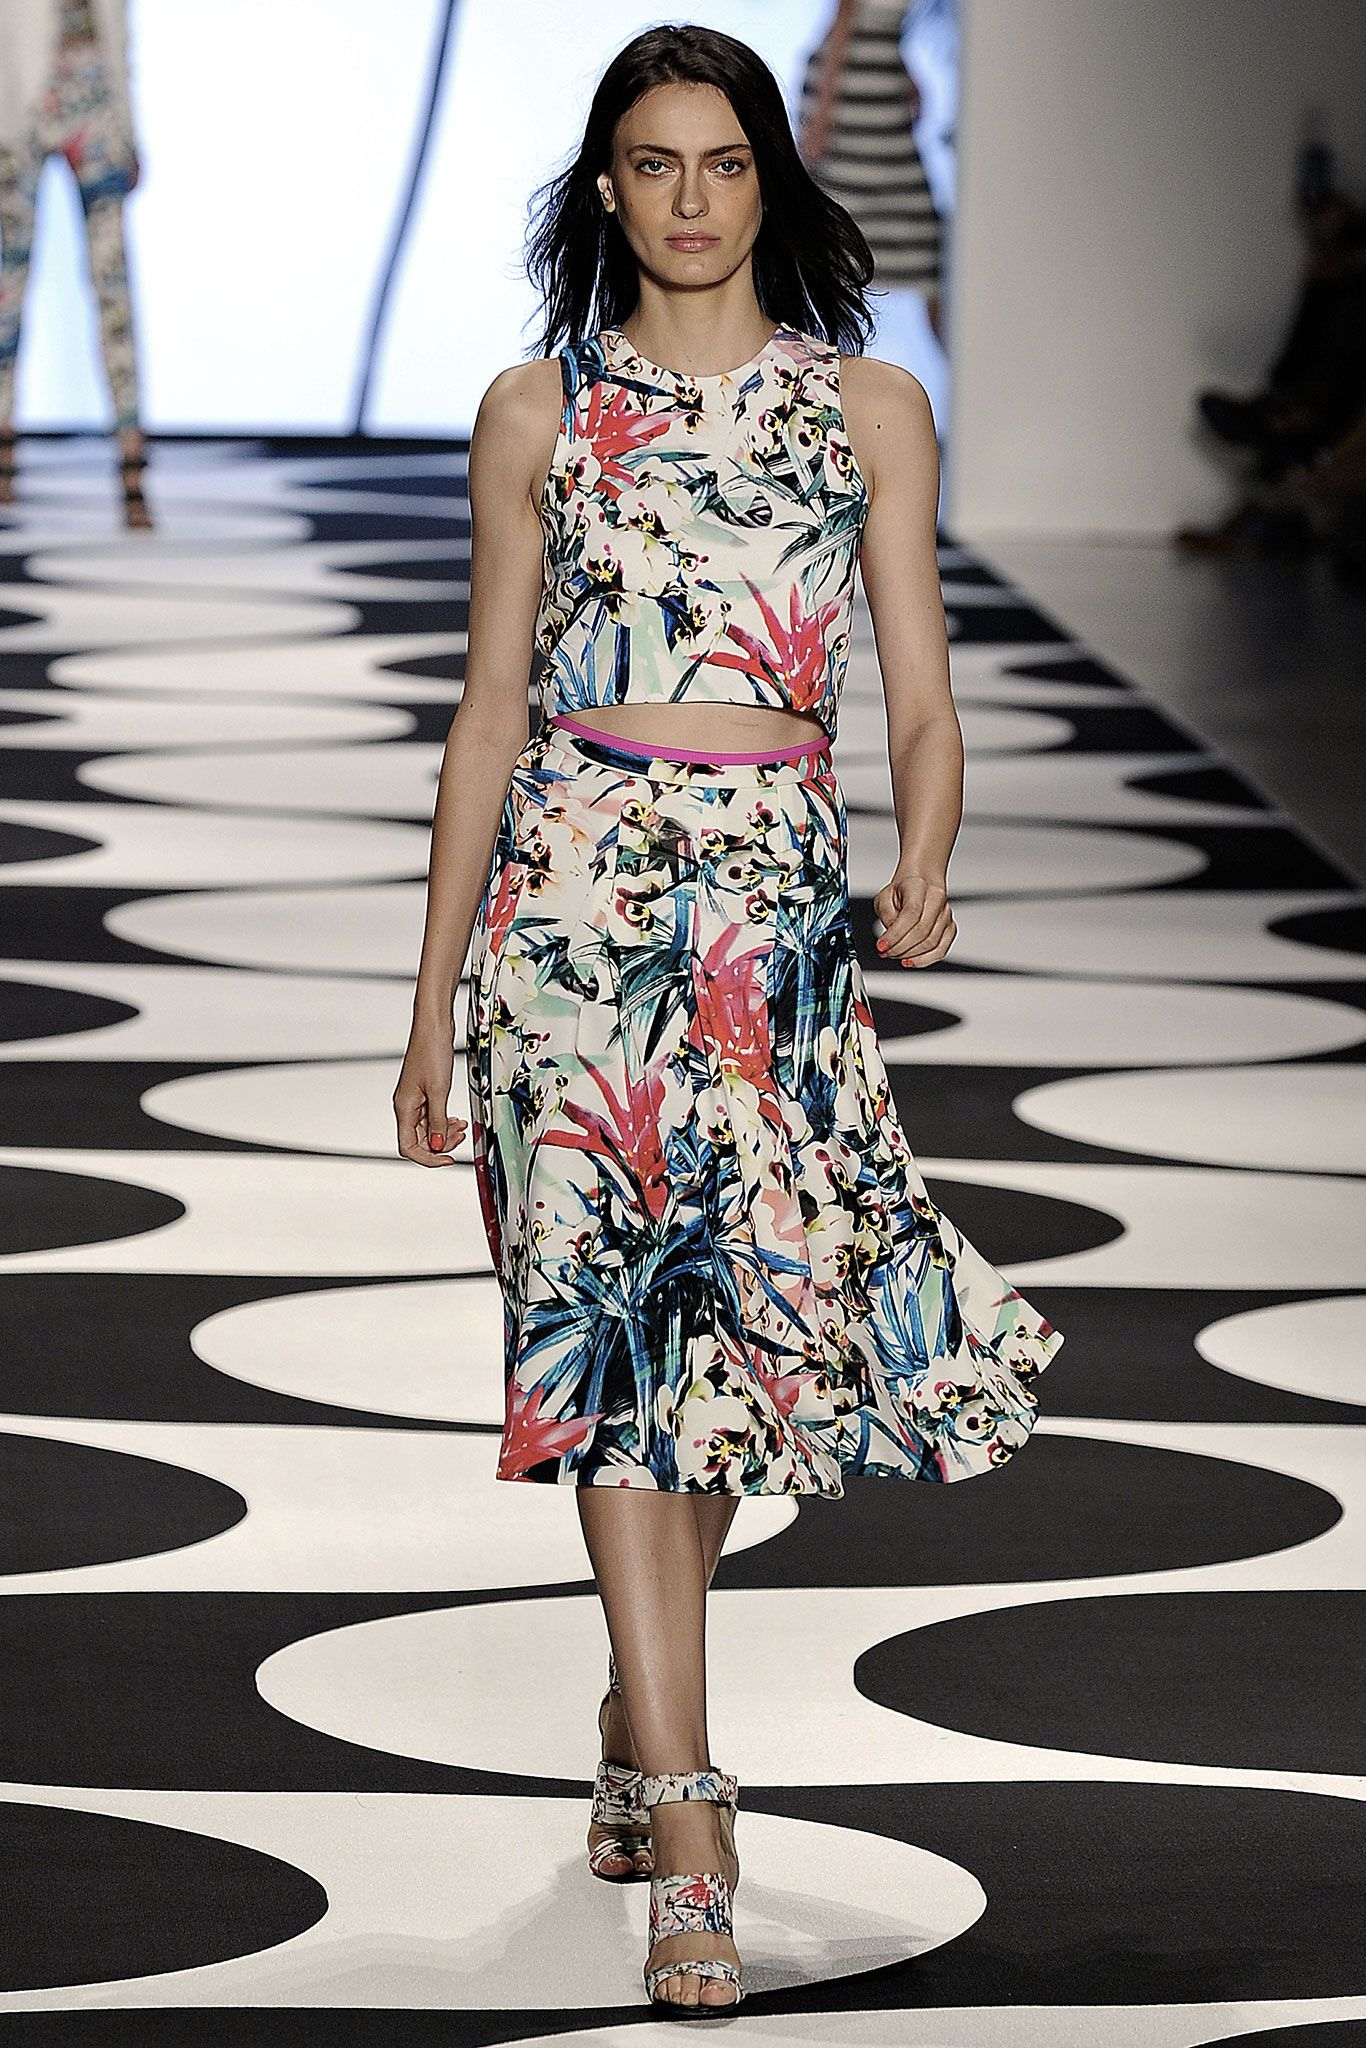 Discussion on this topic: Nicole Miller SpringSummer 2014 RTW – New , nicole-miller-springsummer-2014-rtw-new/